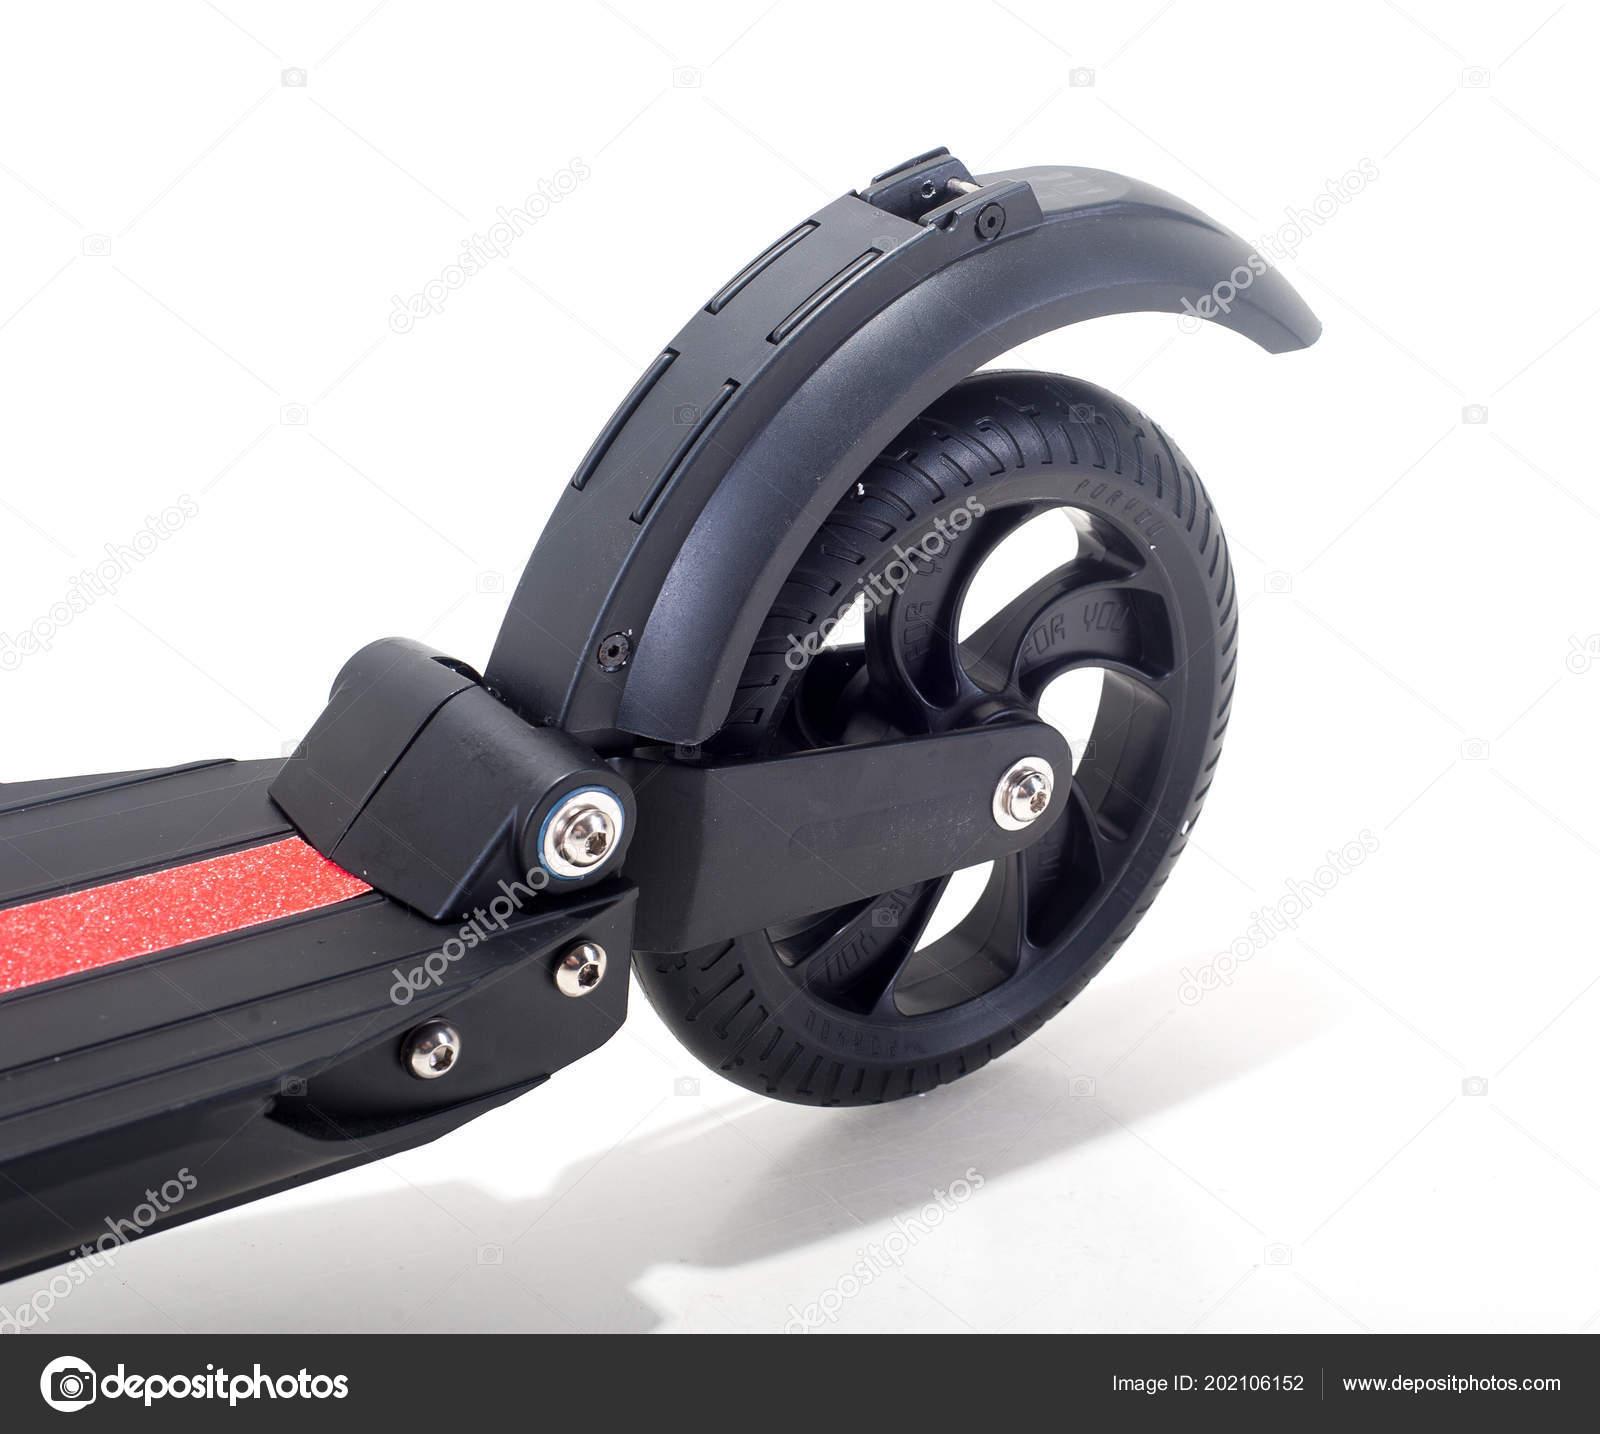 Electric Scooter Hoverboard Vehicle Stock Photo C Sergiomishin 202106152